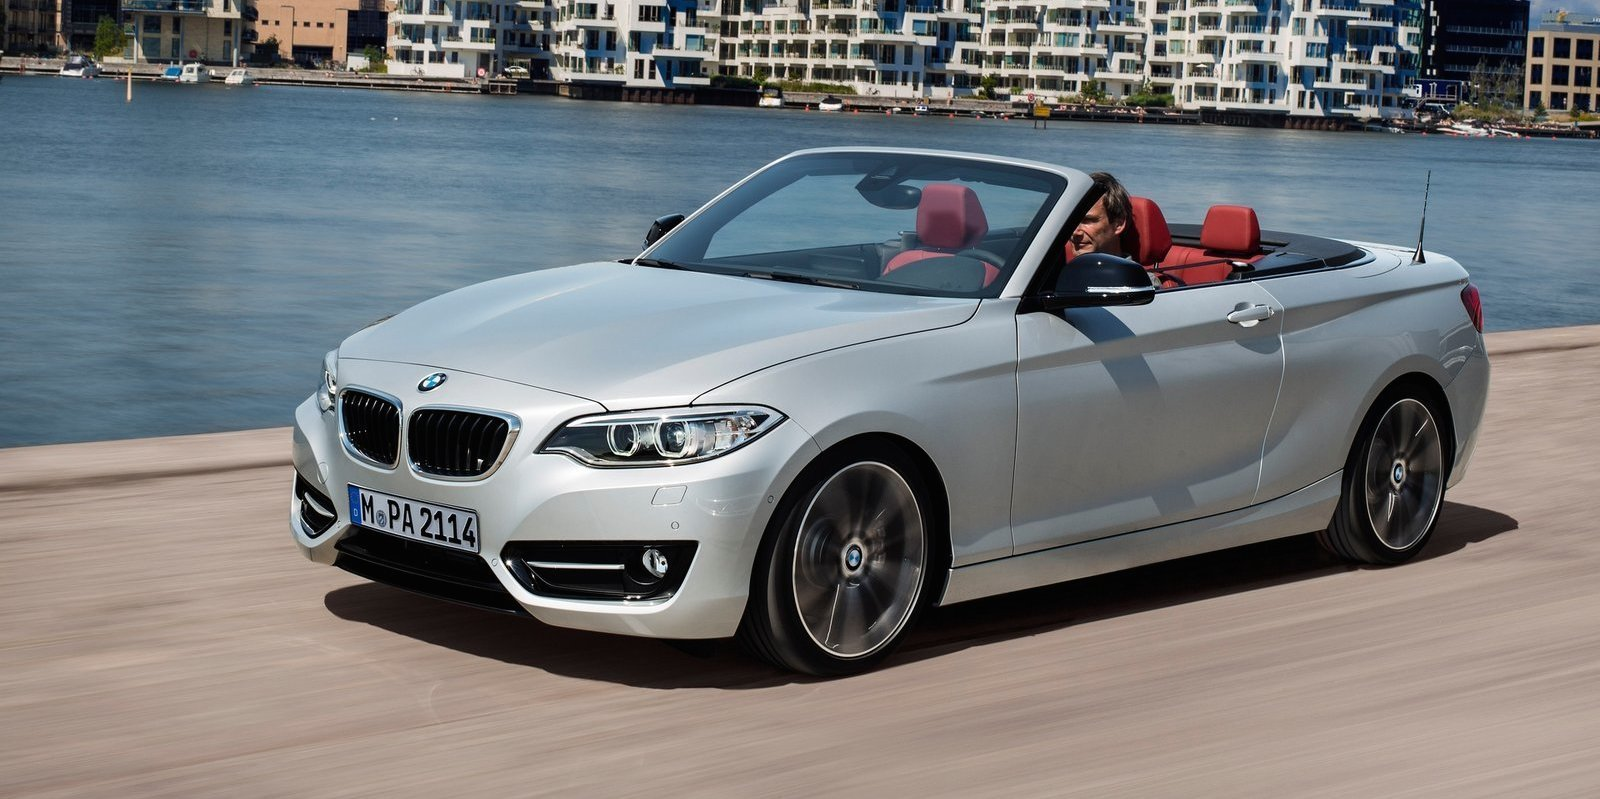 Latest 2015 Bmw New Cars Photos 1 Of 11 Free Download